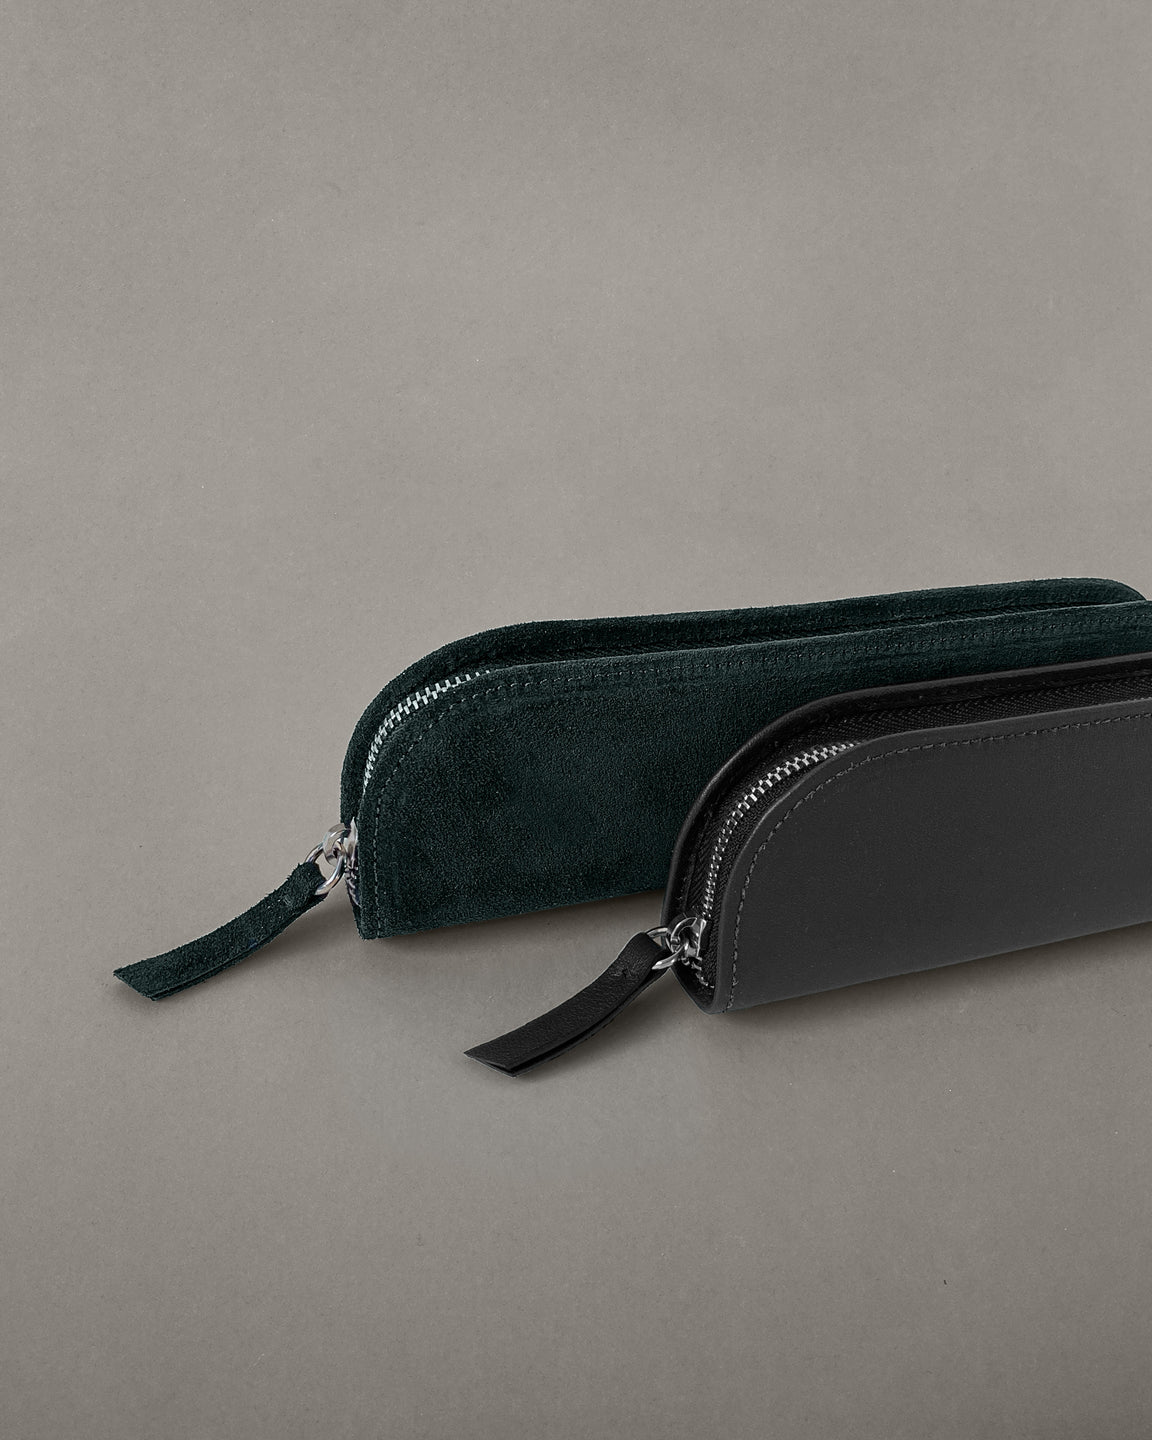 Suede Pencil Case in Green - Suede Pencil Case in Green